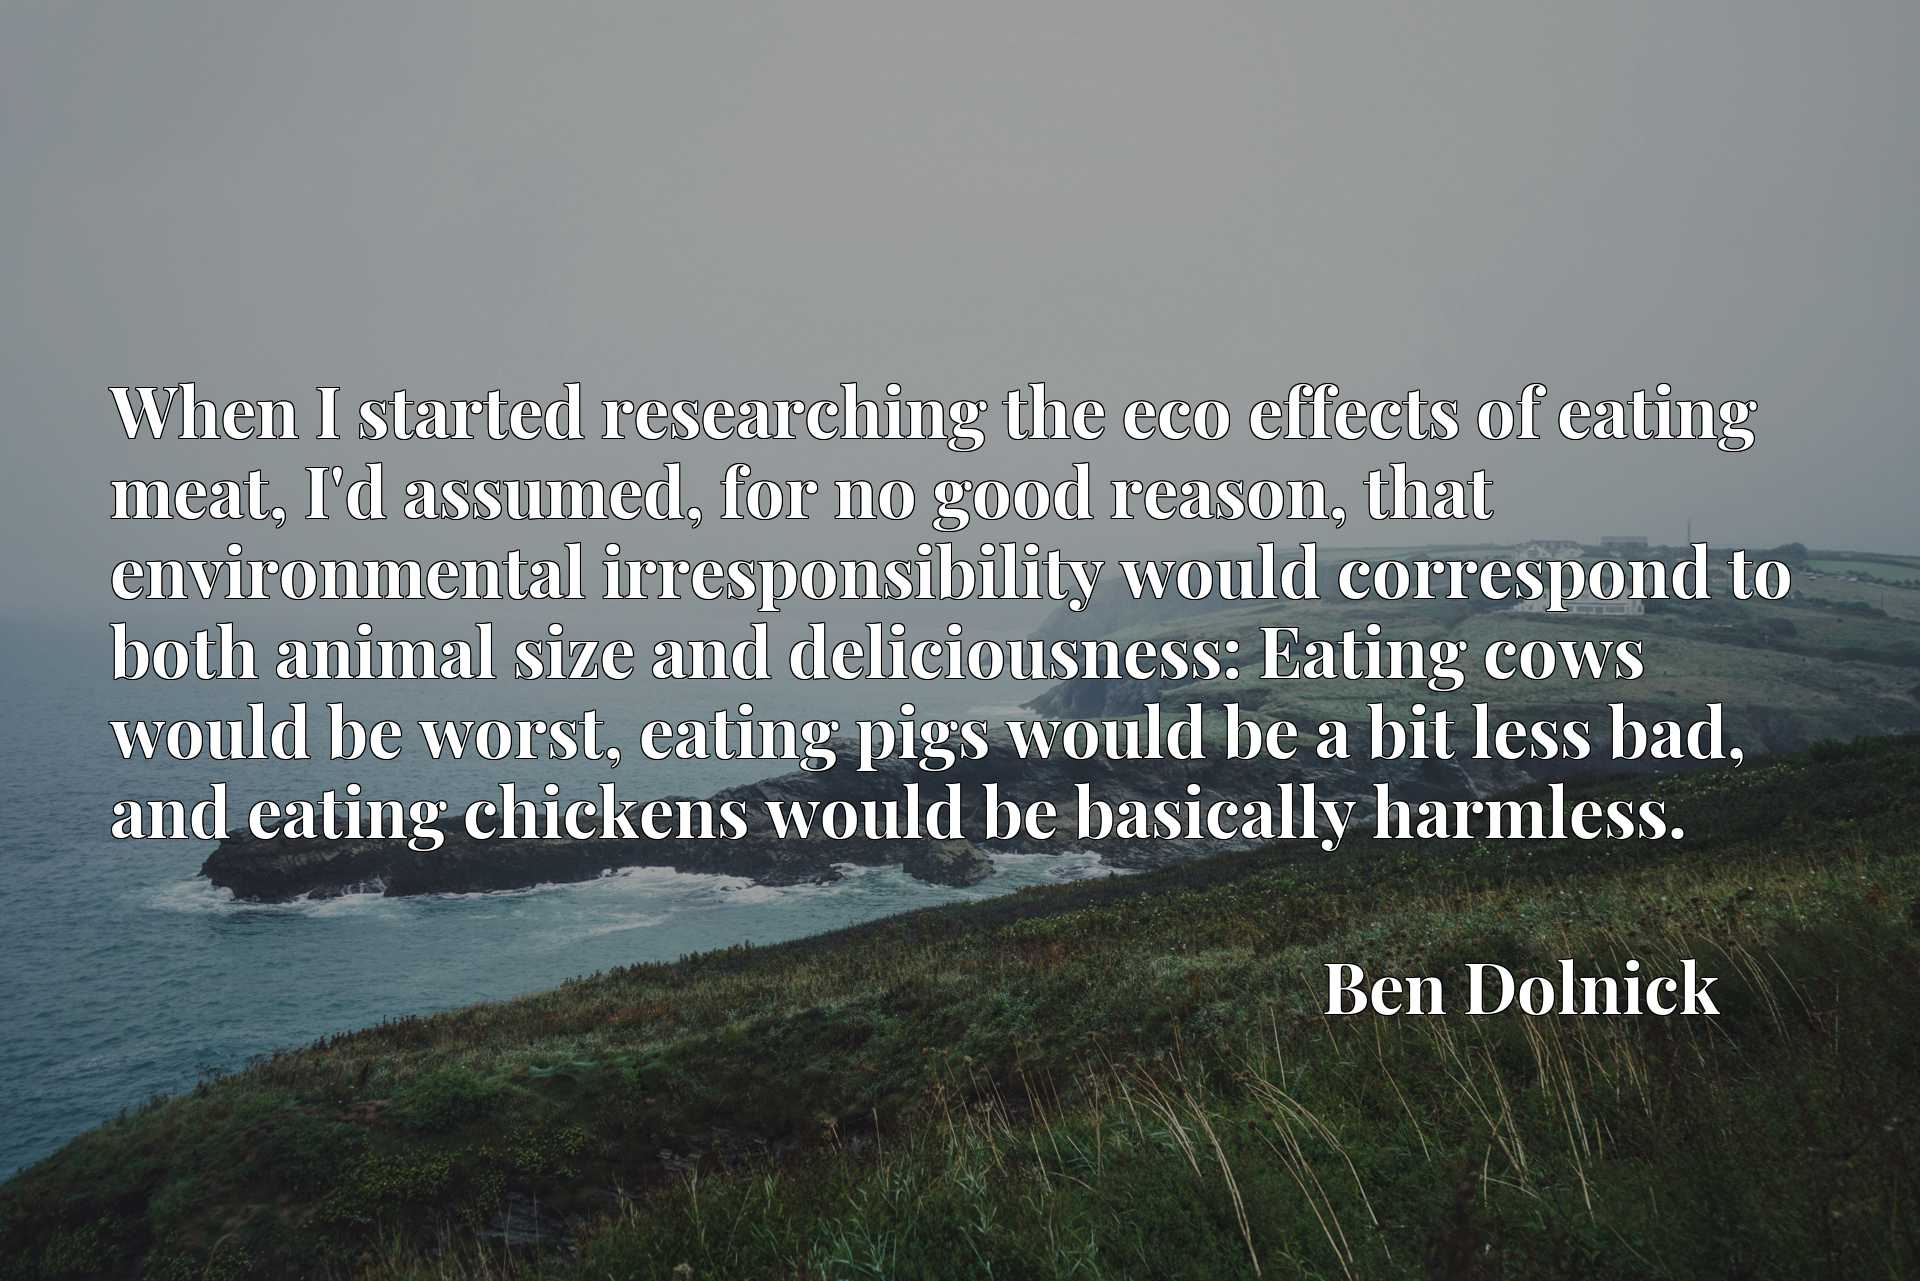 When I started researching the eco effects of eating meat, I'd assumed, for no good reason, that environmental irresponsibility would correspond to both animal size and deliciousness: Eating cows would be worst, eating pigs would be a bit less bad, and eating chickens would be basically harmless.